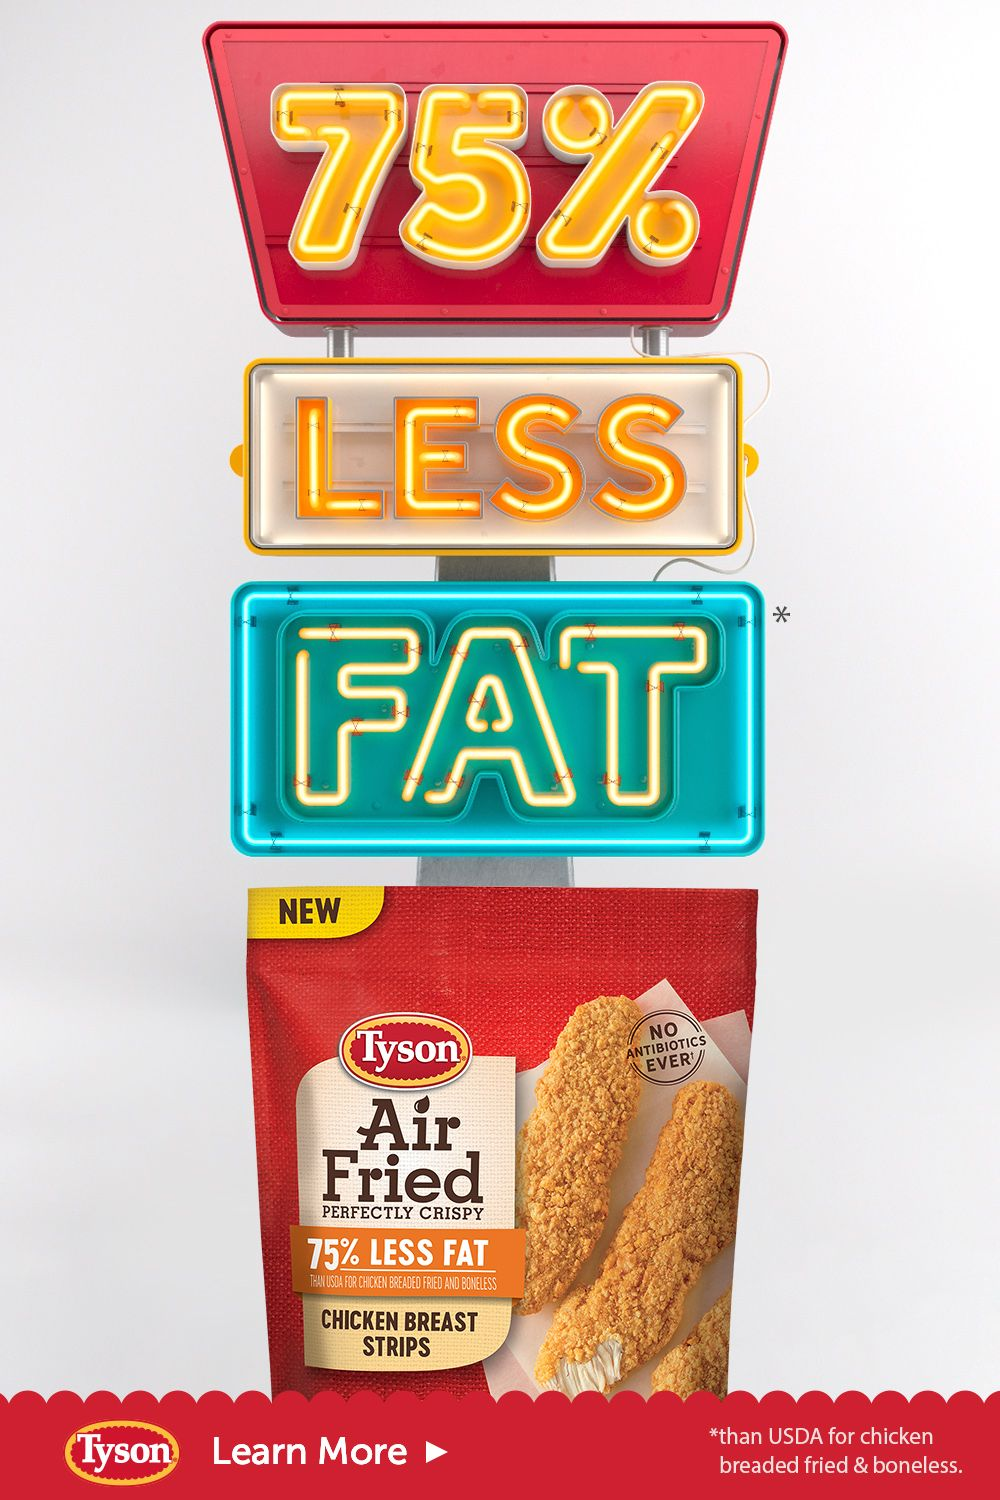 New Tyson Air Fried Chicken Is The Lightest Fried Chicken We Ve